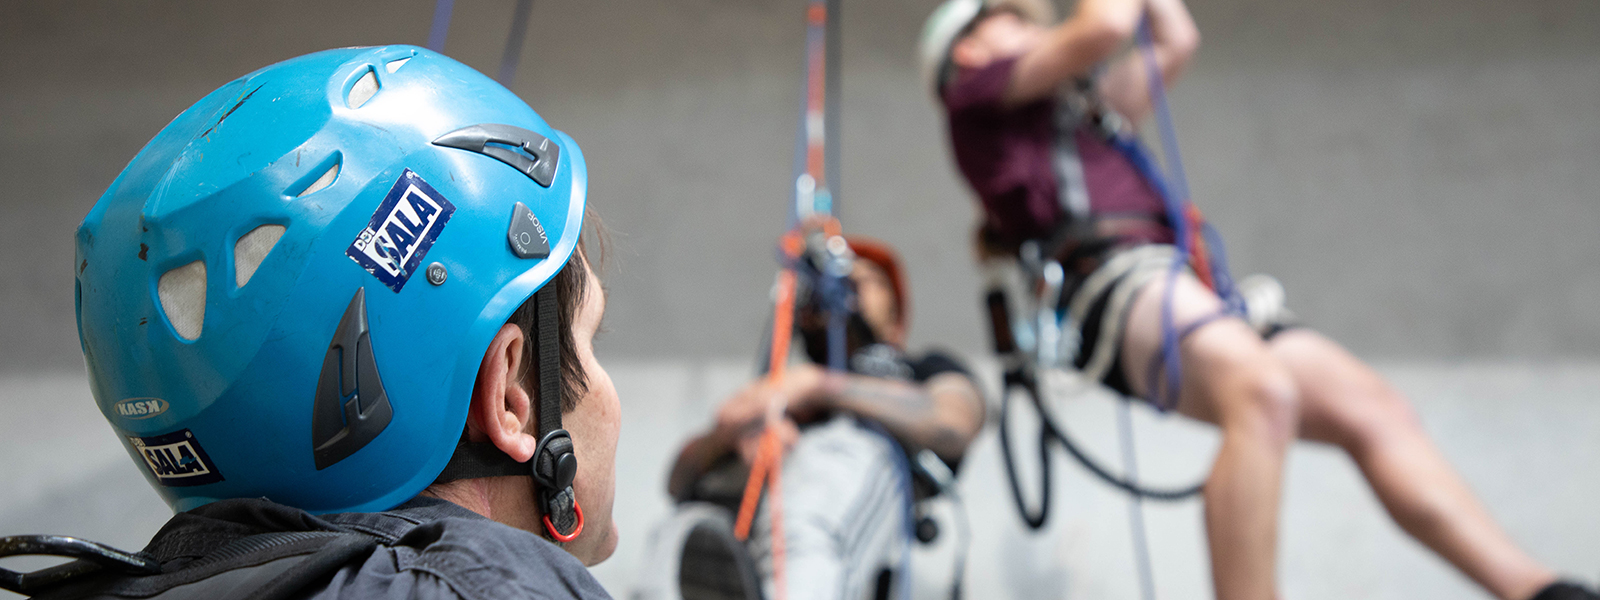 Instructor looks on as students practice vertical rope rescue techniques.